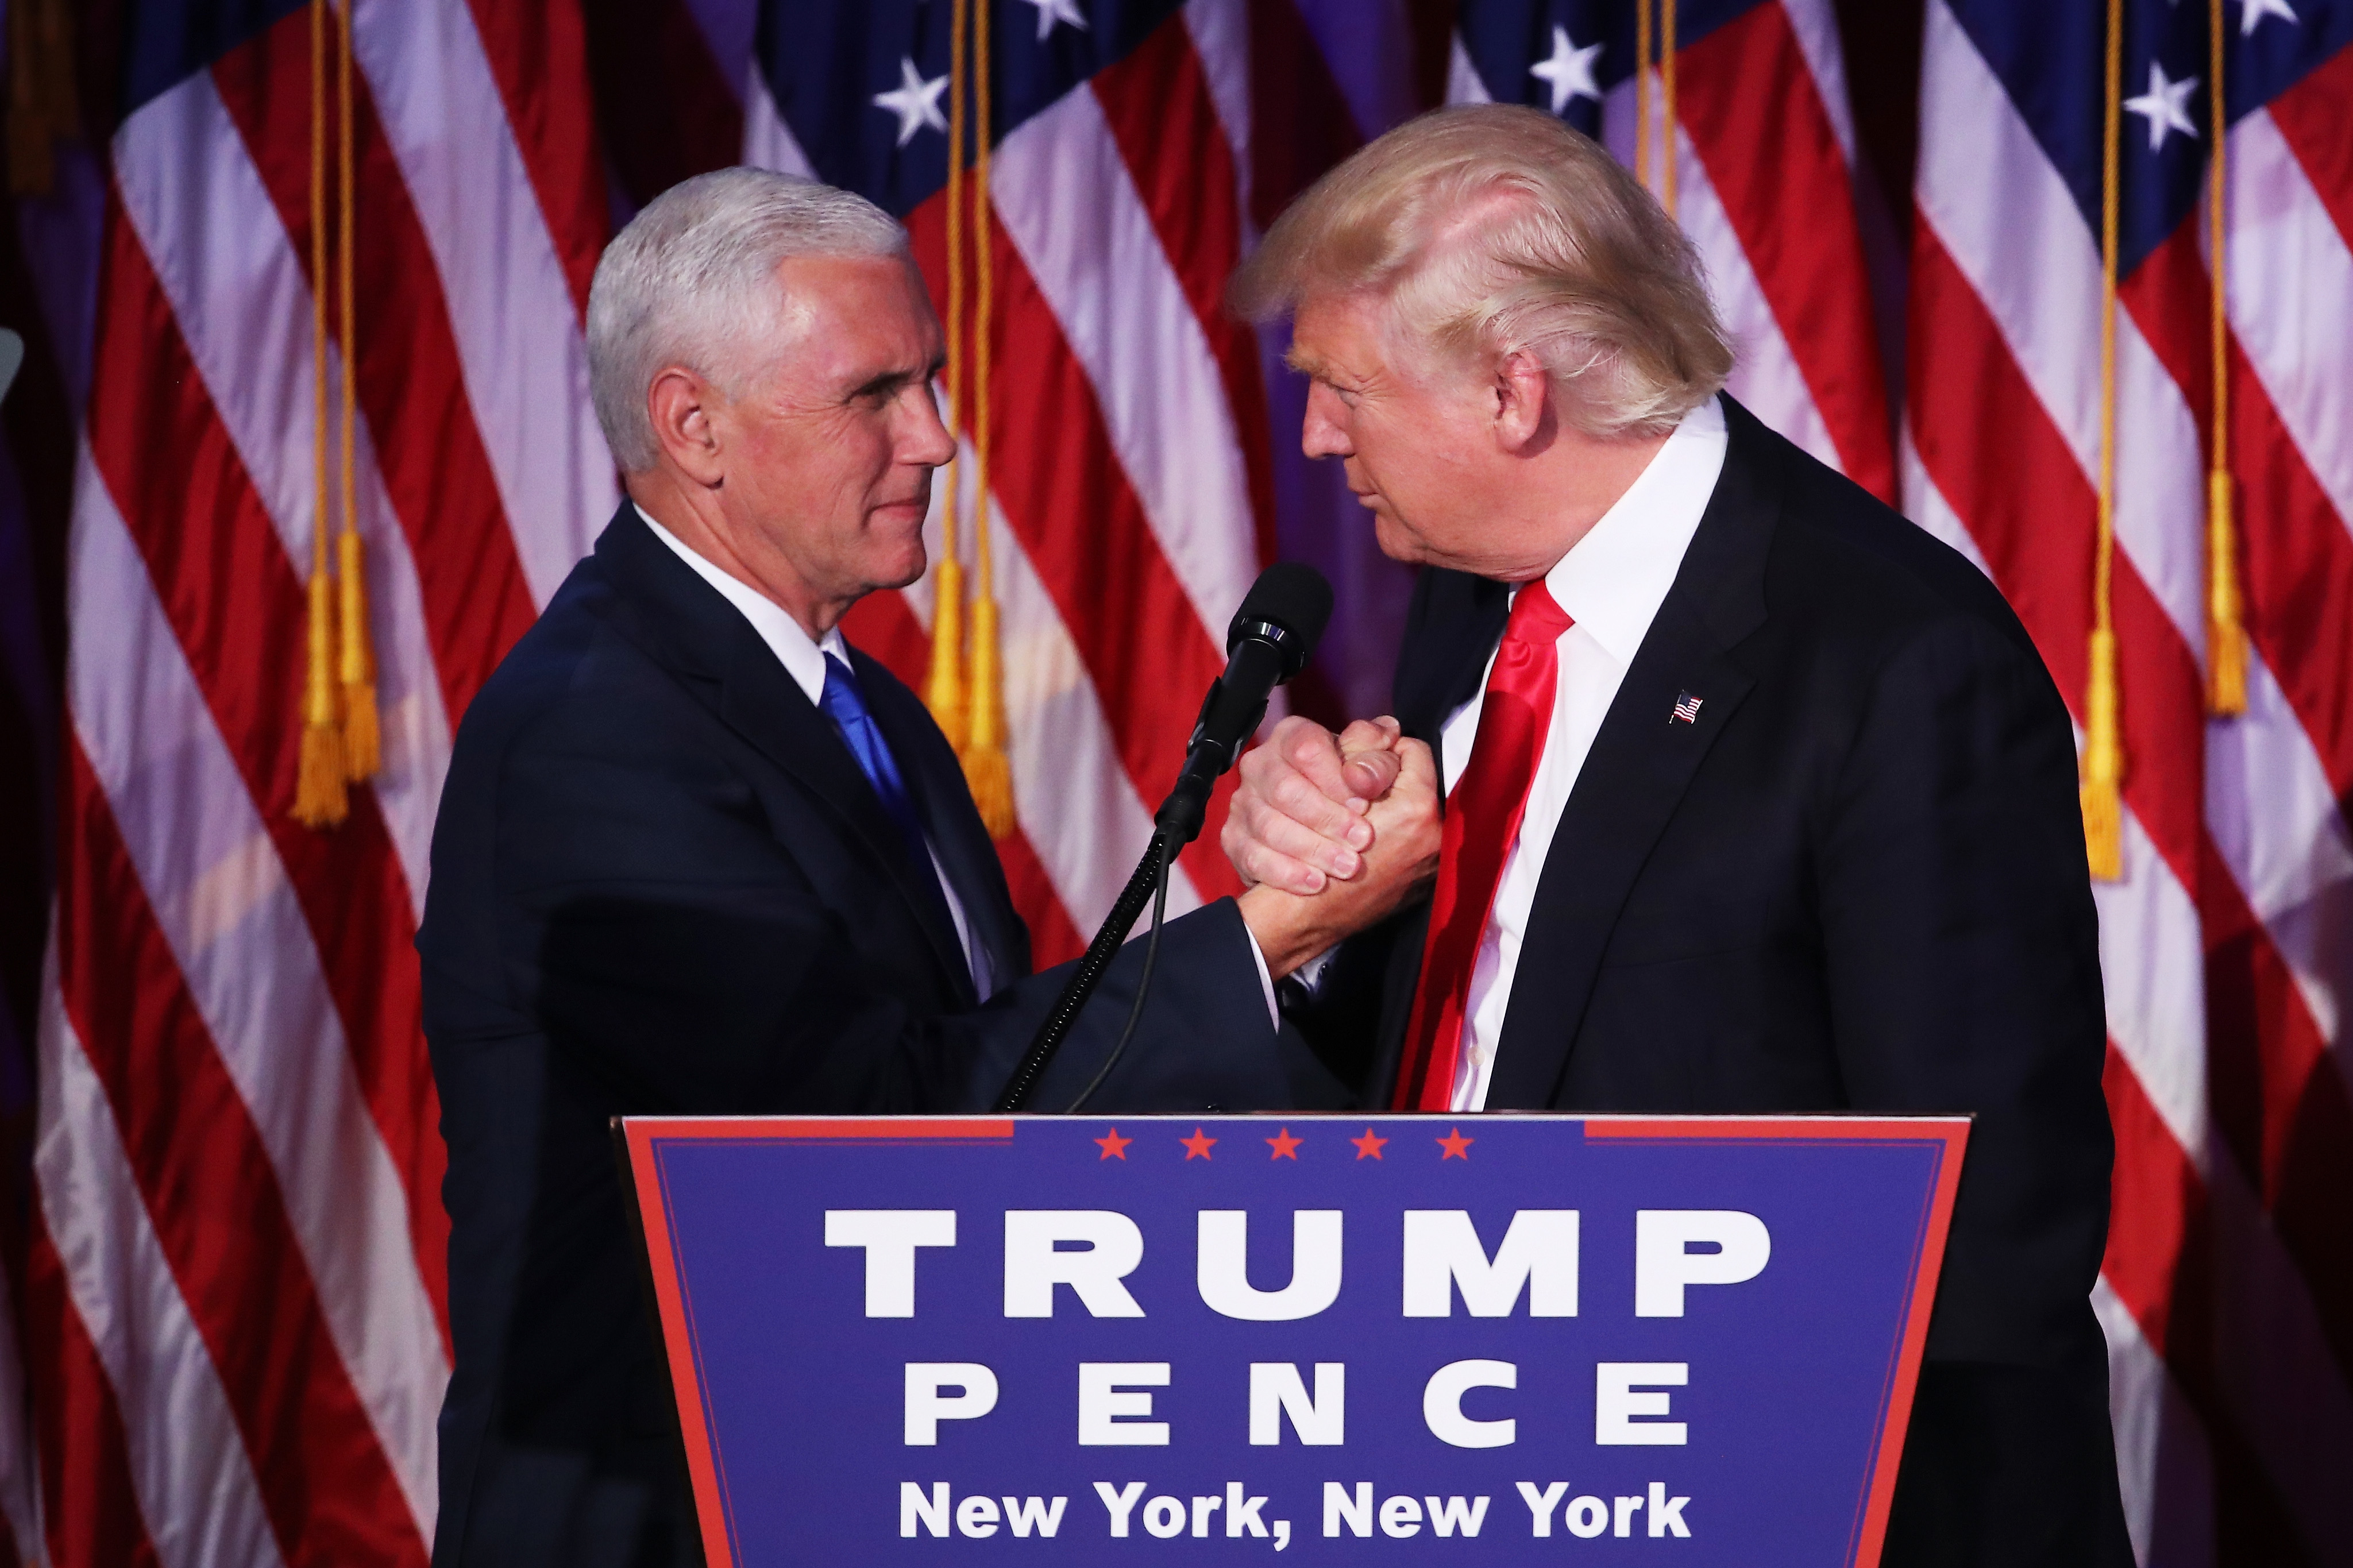 Vice president-elect Mike Pence and Republican president-elect Donald Trump shake hands during his election night event at the New York Hilton Midtown in New York City, on Nov. 9, 2016.